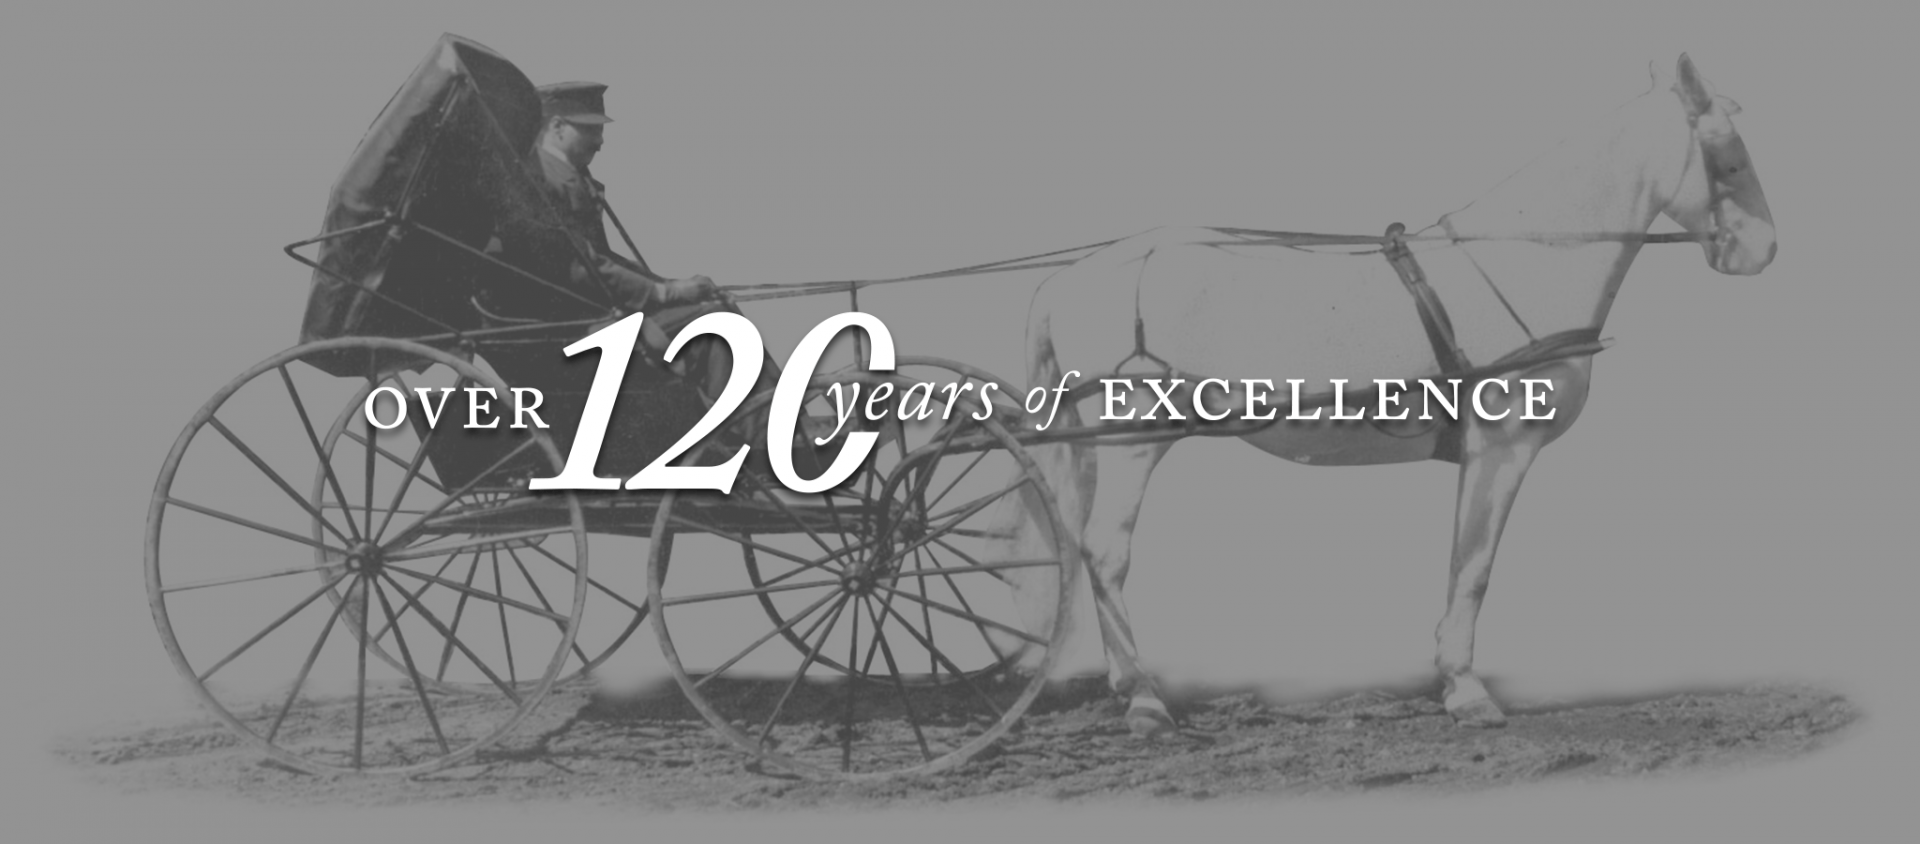 Rooted in tradition, committed to today: The Dowd Agencies at 120